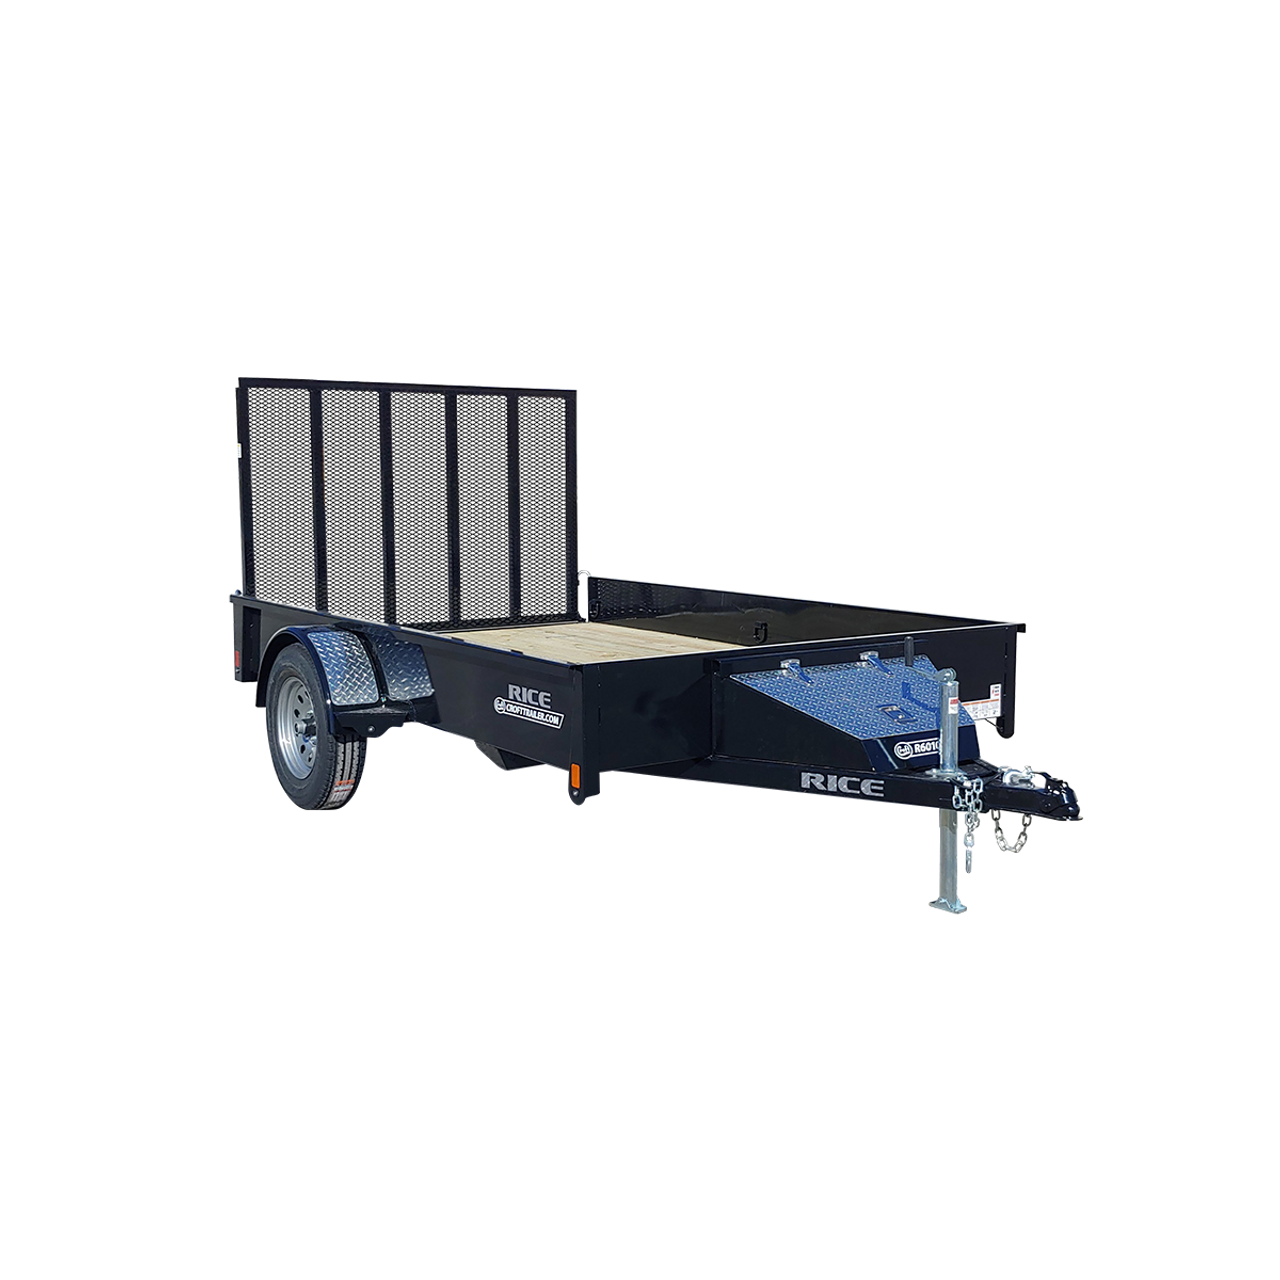 R612S --- 6' x 12' Trailer with Ramp Gate and Solid Sides